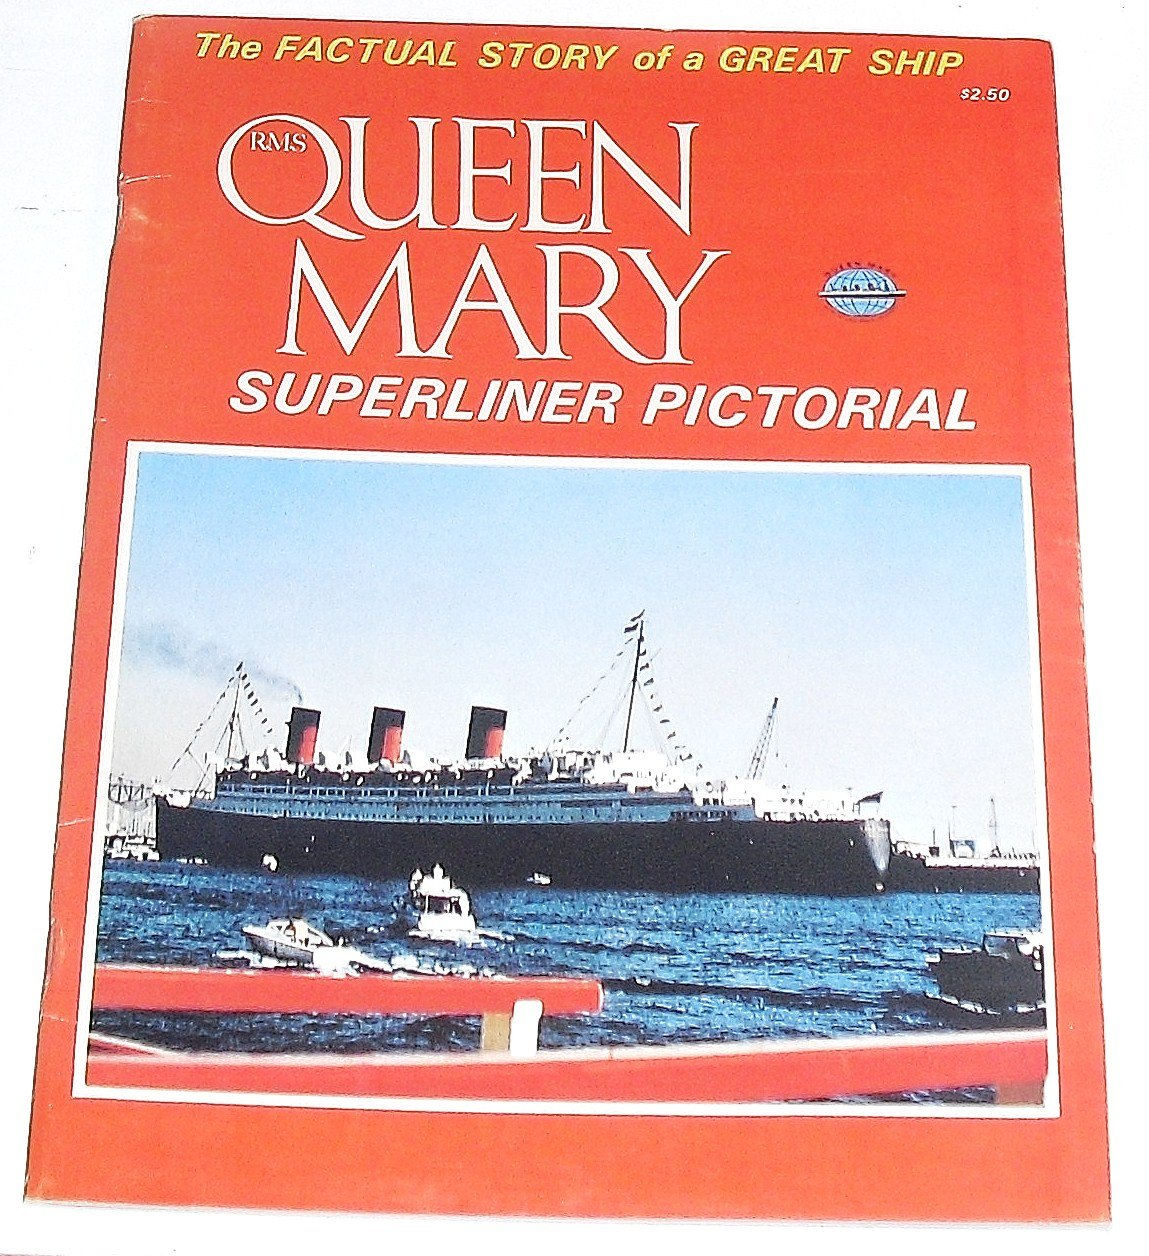 R. M. S. Queen Mary - Superliner Pictorial - The Factual Story of a Great Ship